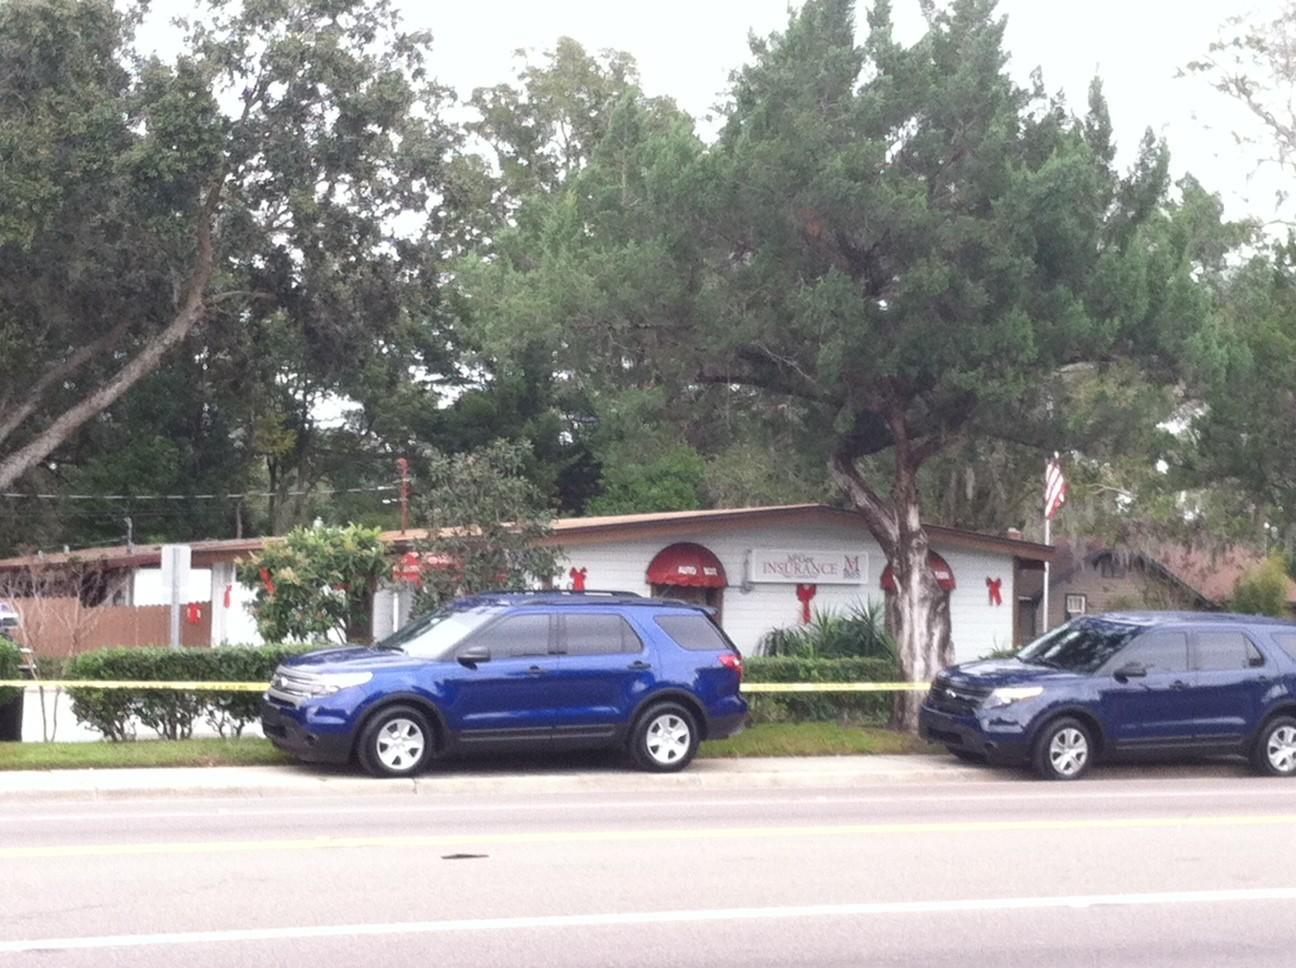 A woman was shot and killed at McGee Insurance and Financial Services LLC on West 25th Street in Sanford, police said.